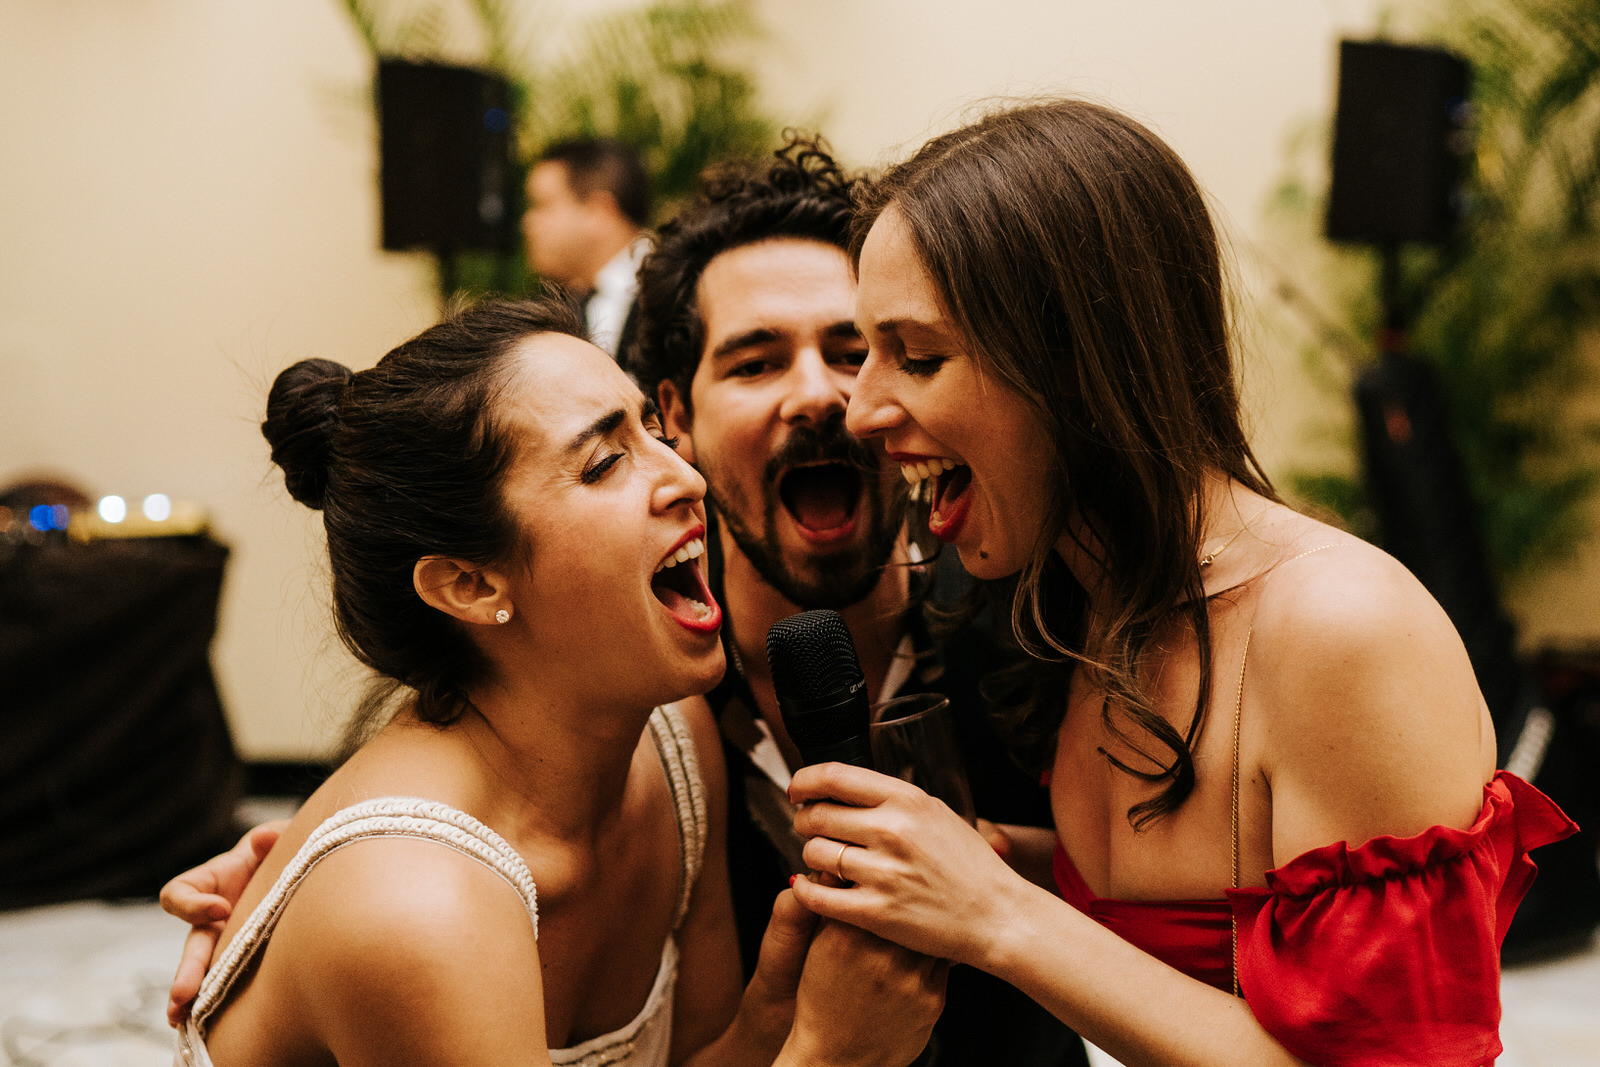 Bride and two friends hold the microphone and sing into it passionately